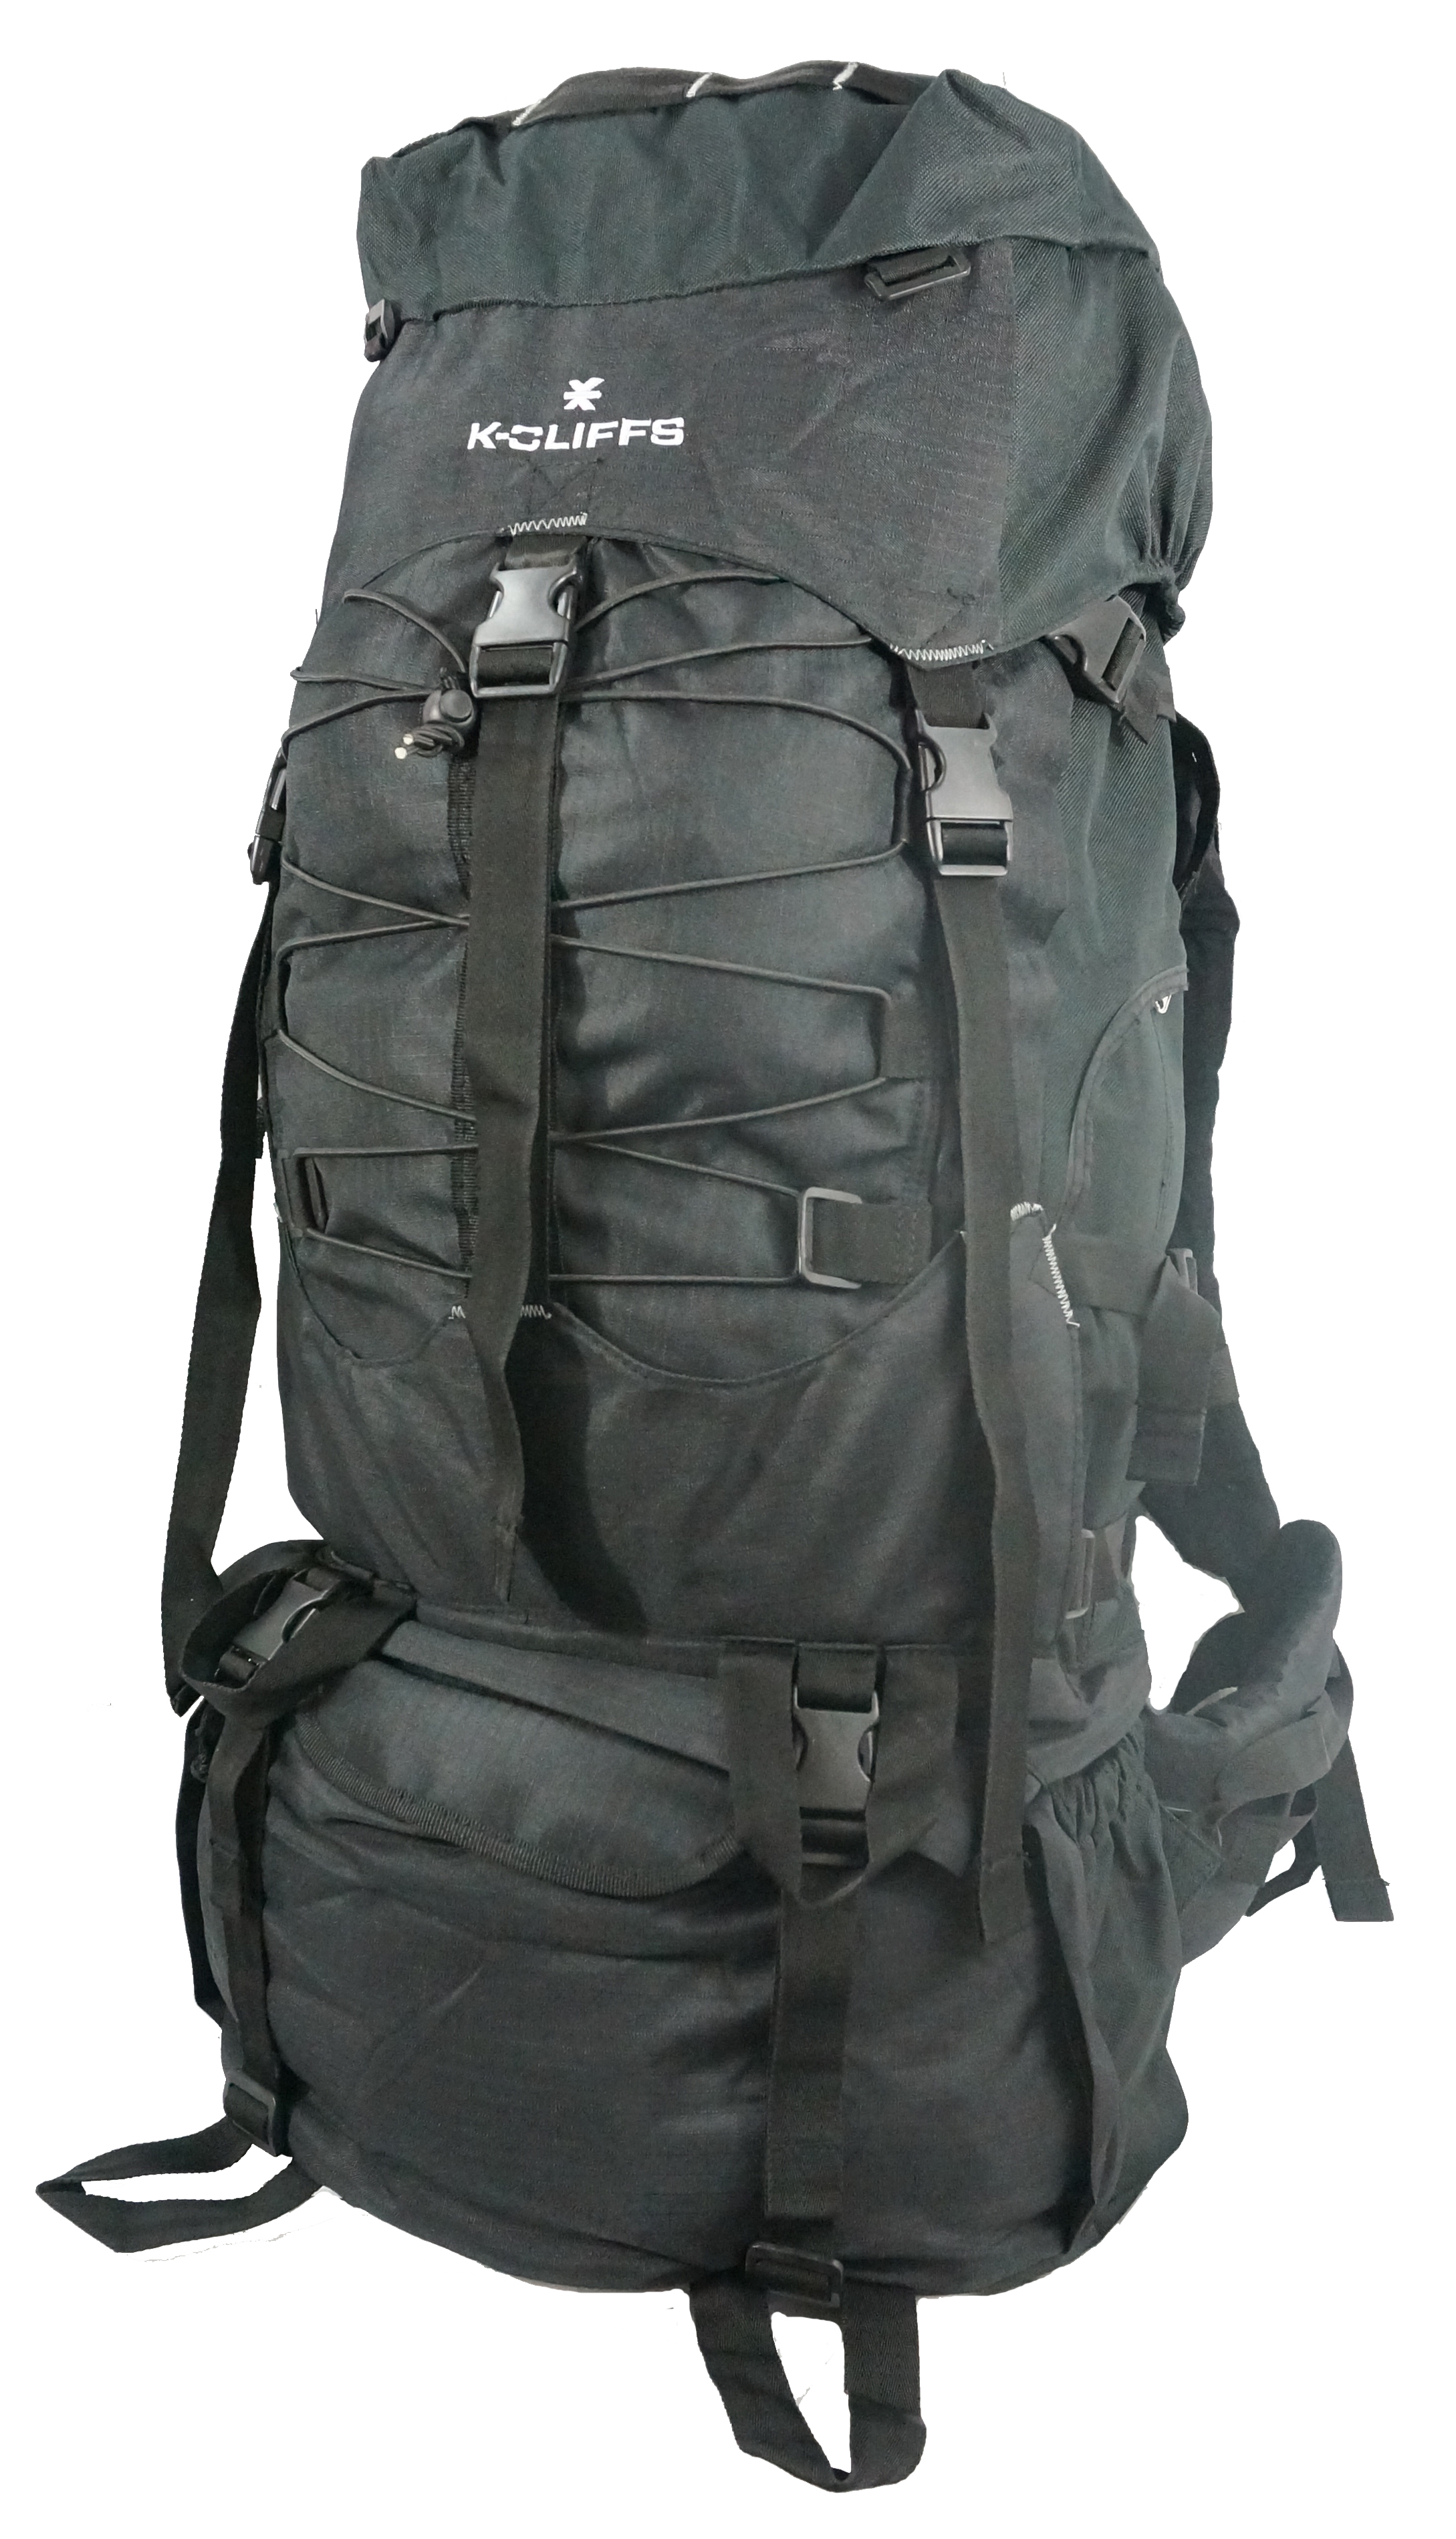 K-Cliffs Hiking Backpack Large Scout Camping Backpack Outdoor Travel Bag w Rain Cover Black by K-Cliffs